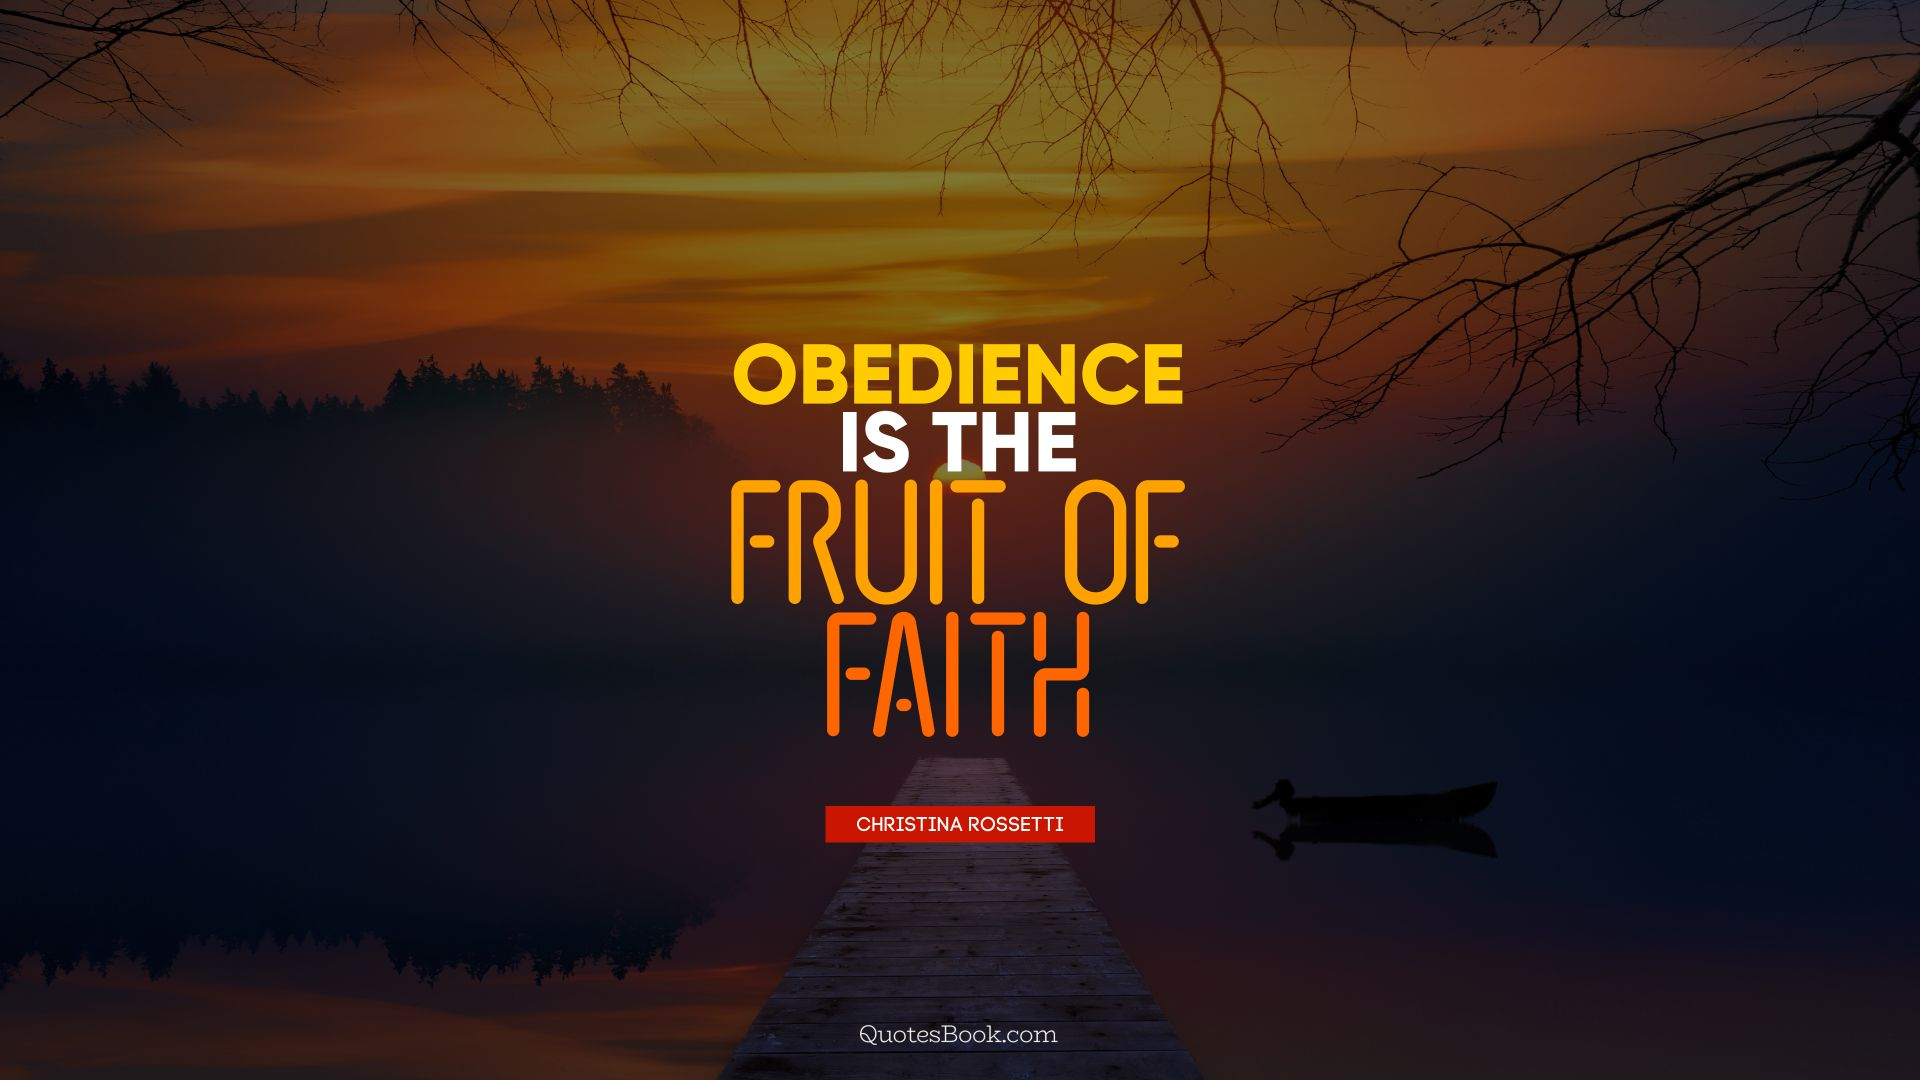 Obedience is the fruit of faith. - Quote by Christina Rossetti